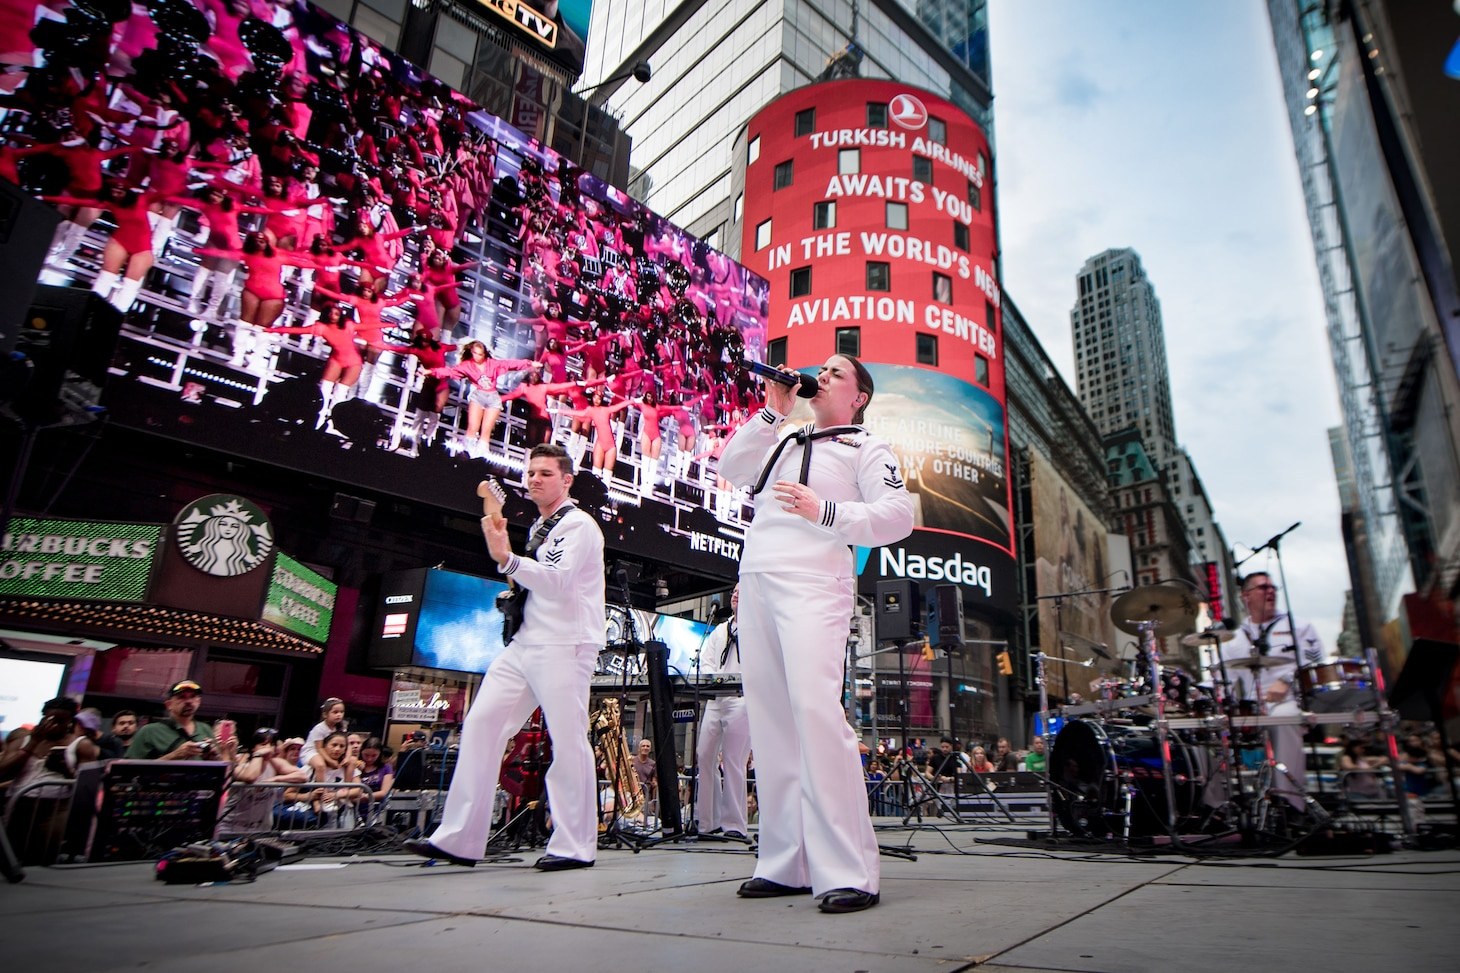 Navy Band Northeast's Rhode Island Sound performs at Times Square during Fleet Week New York (FWNY) 2019